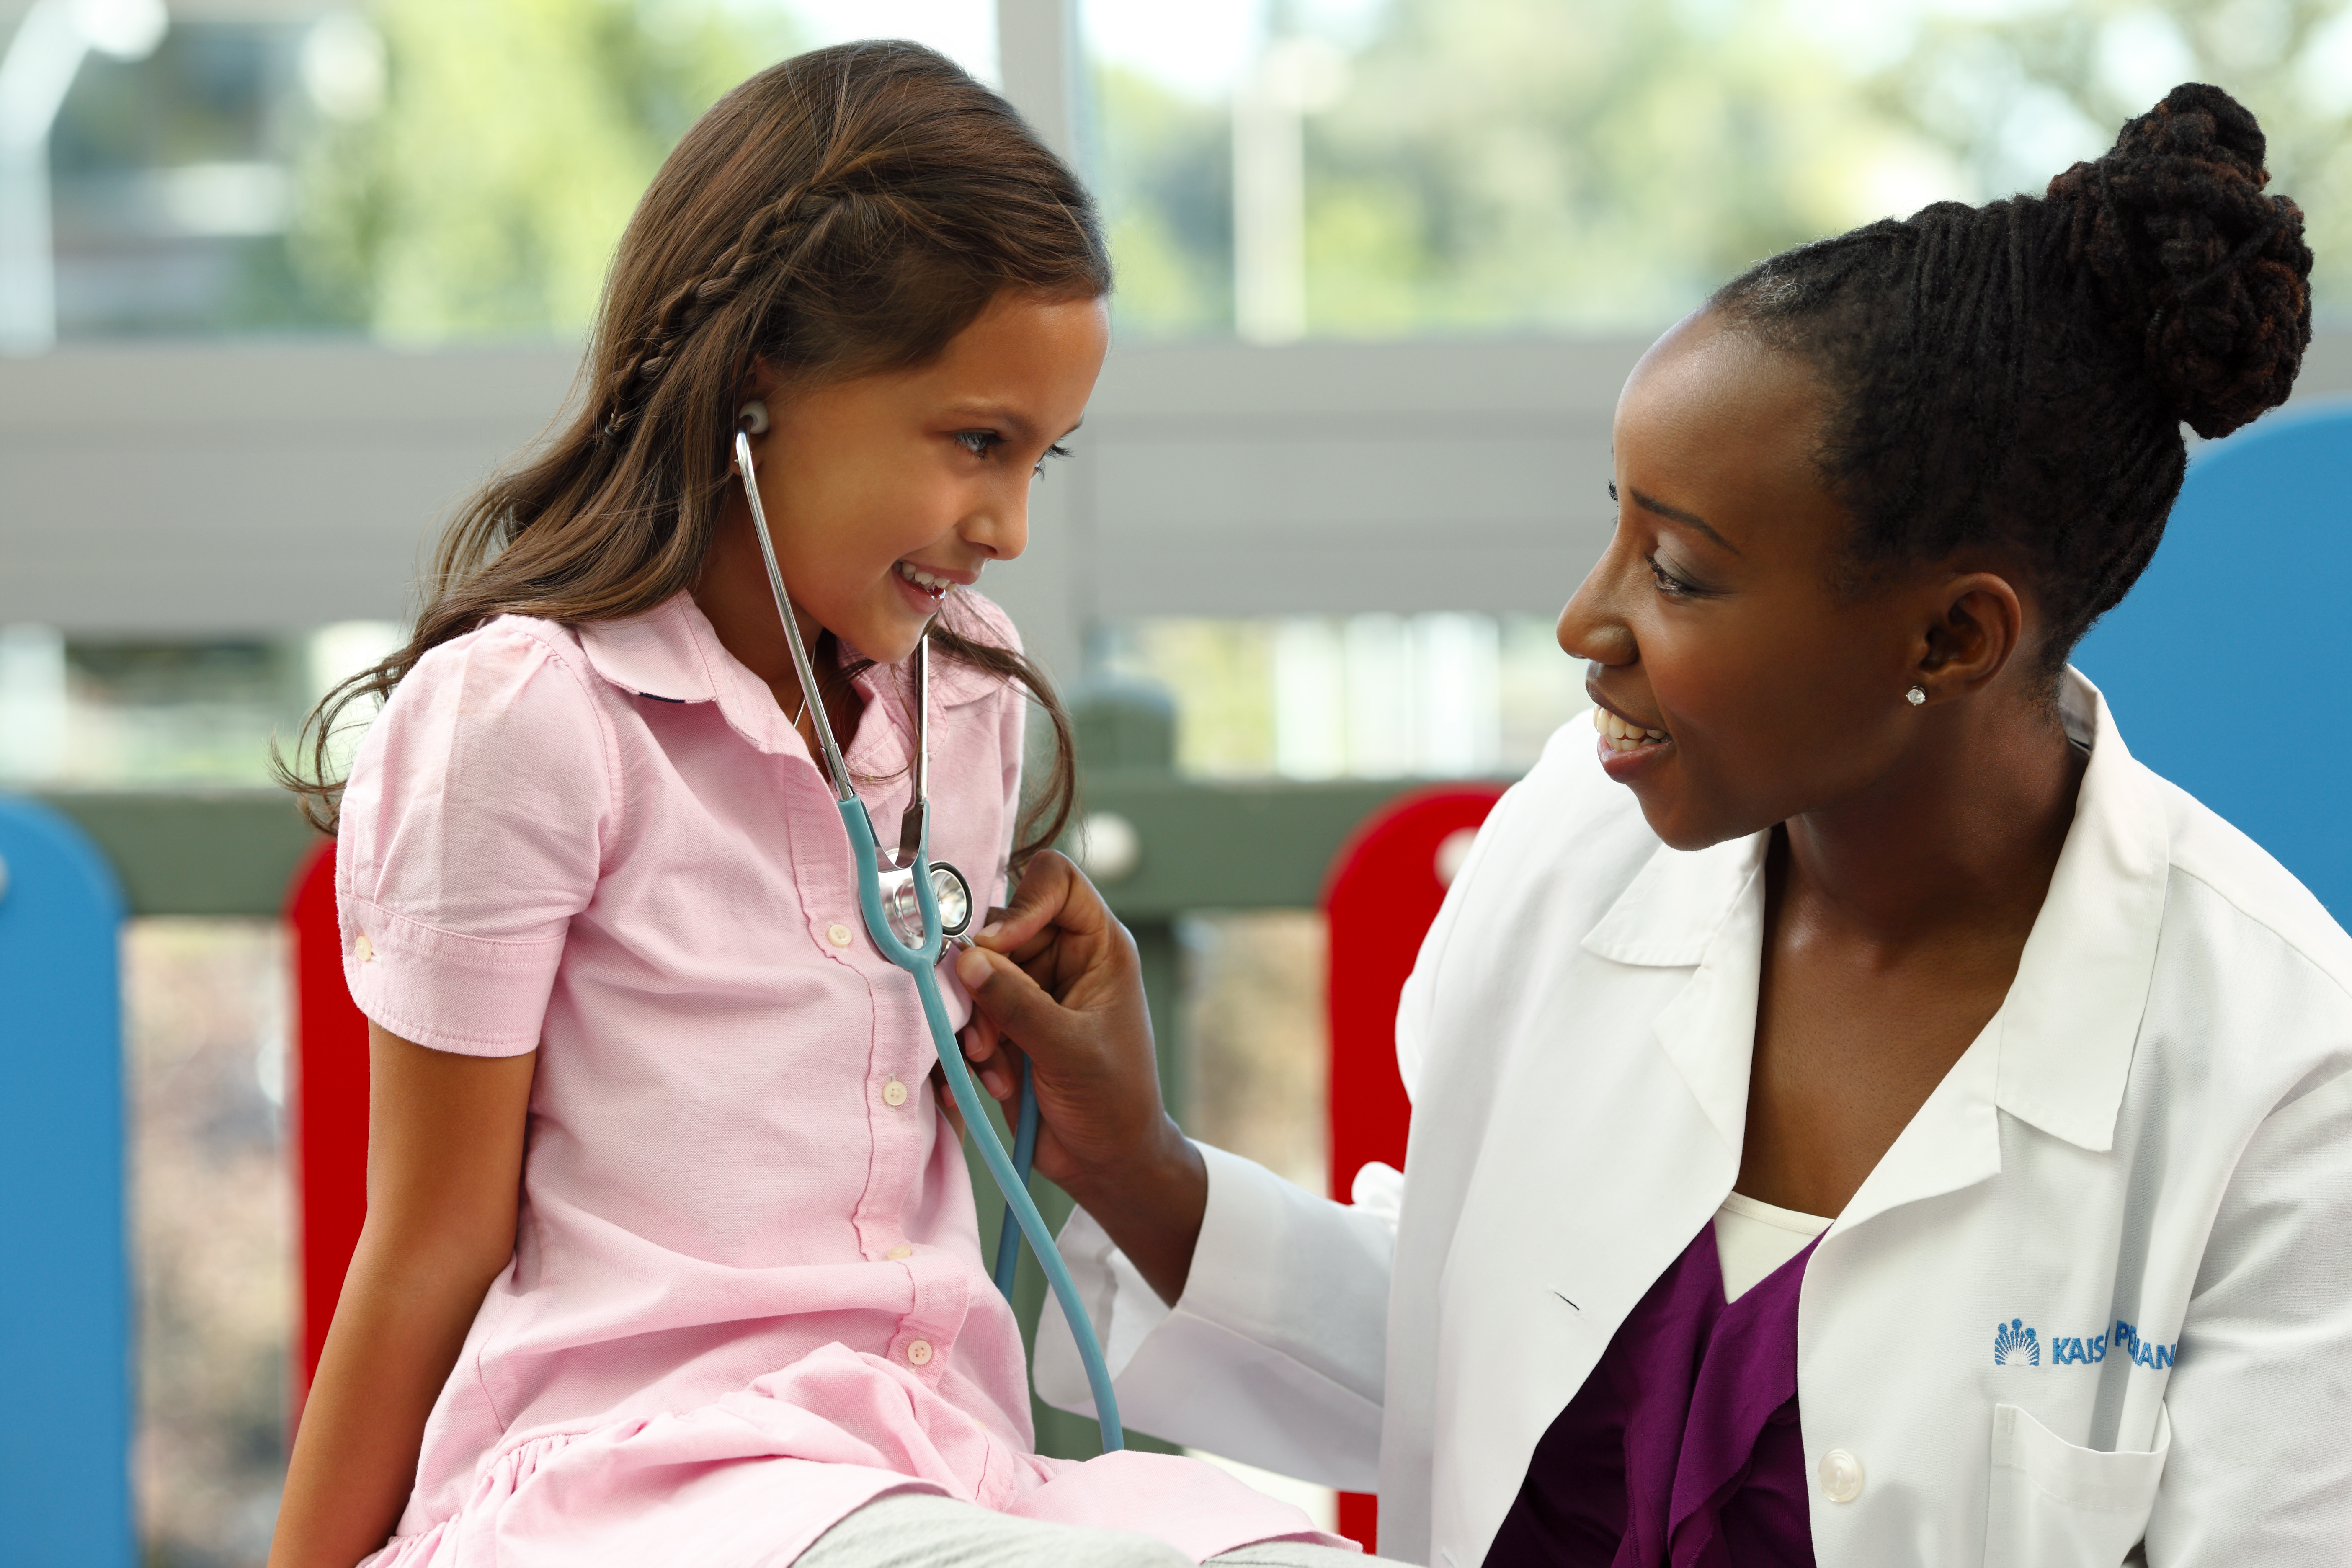 pediatric programs and resources southern alameda county doctor and girl stethoscope